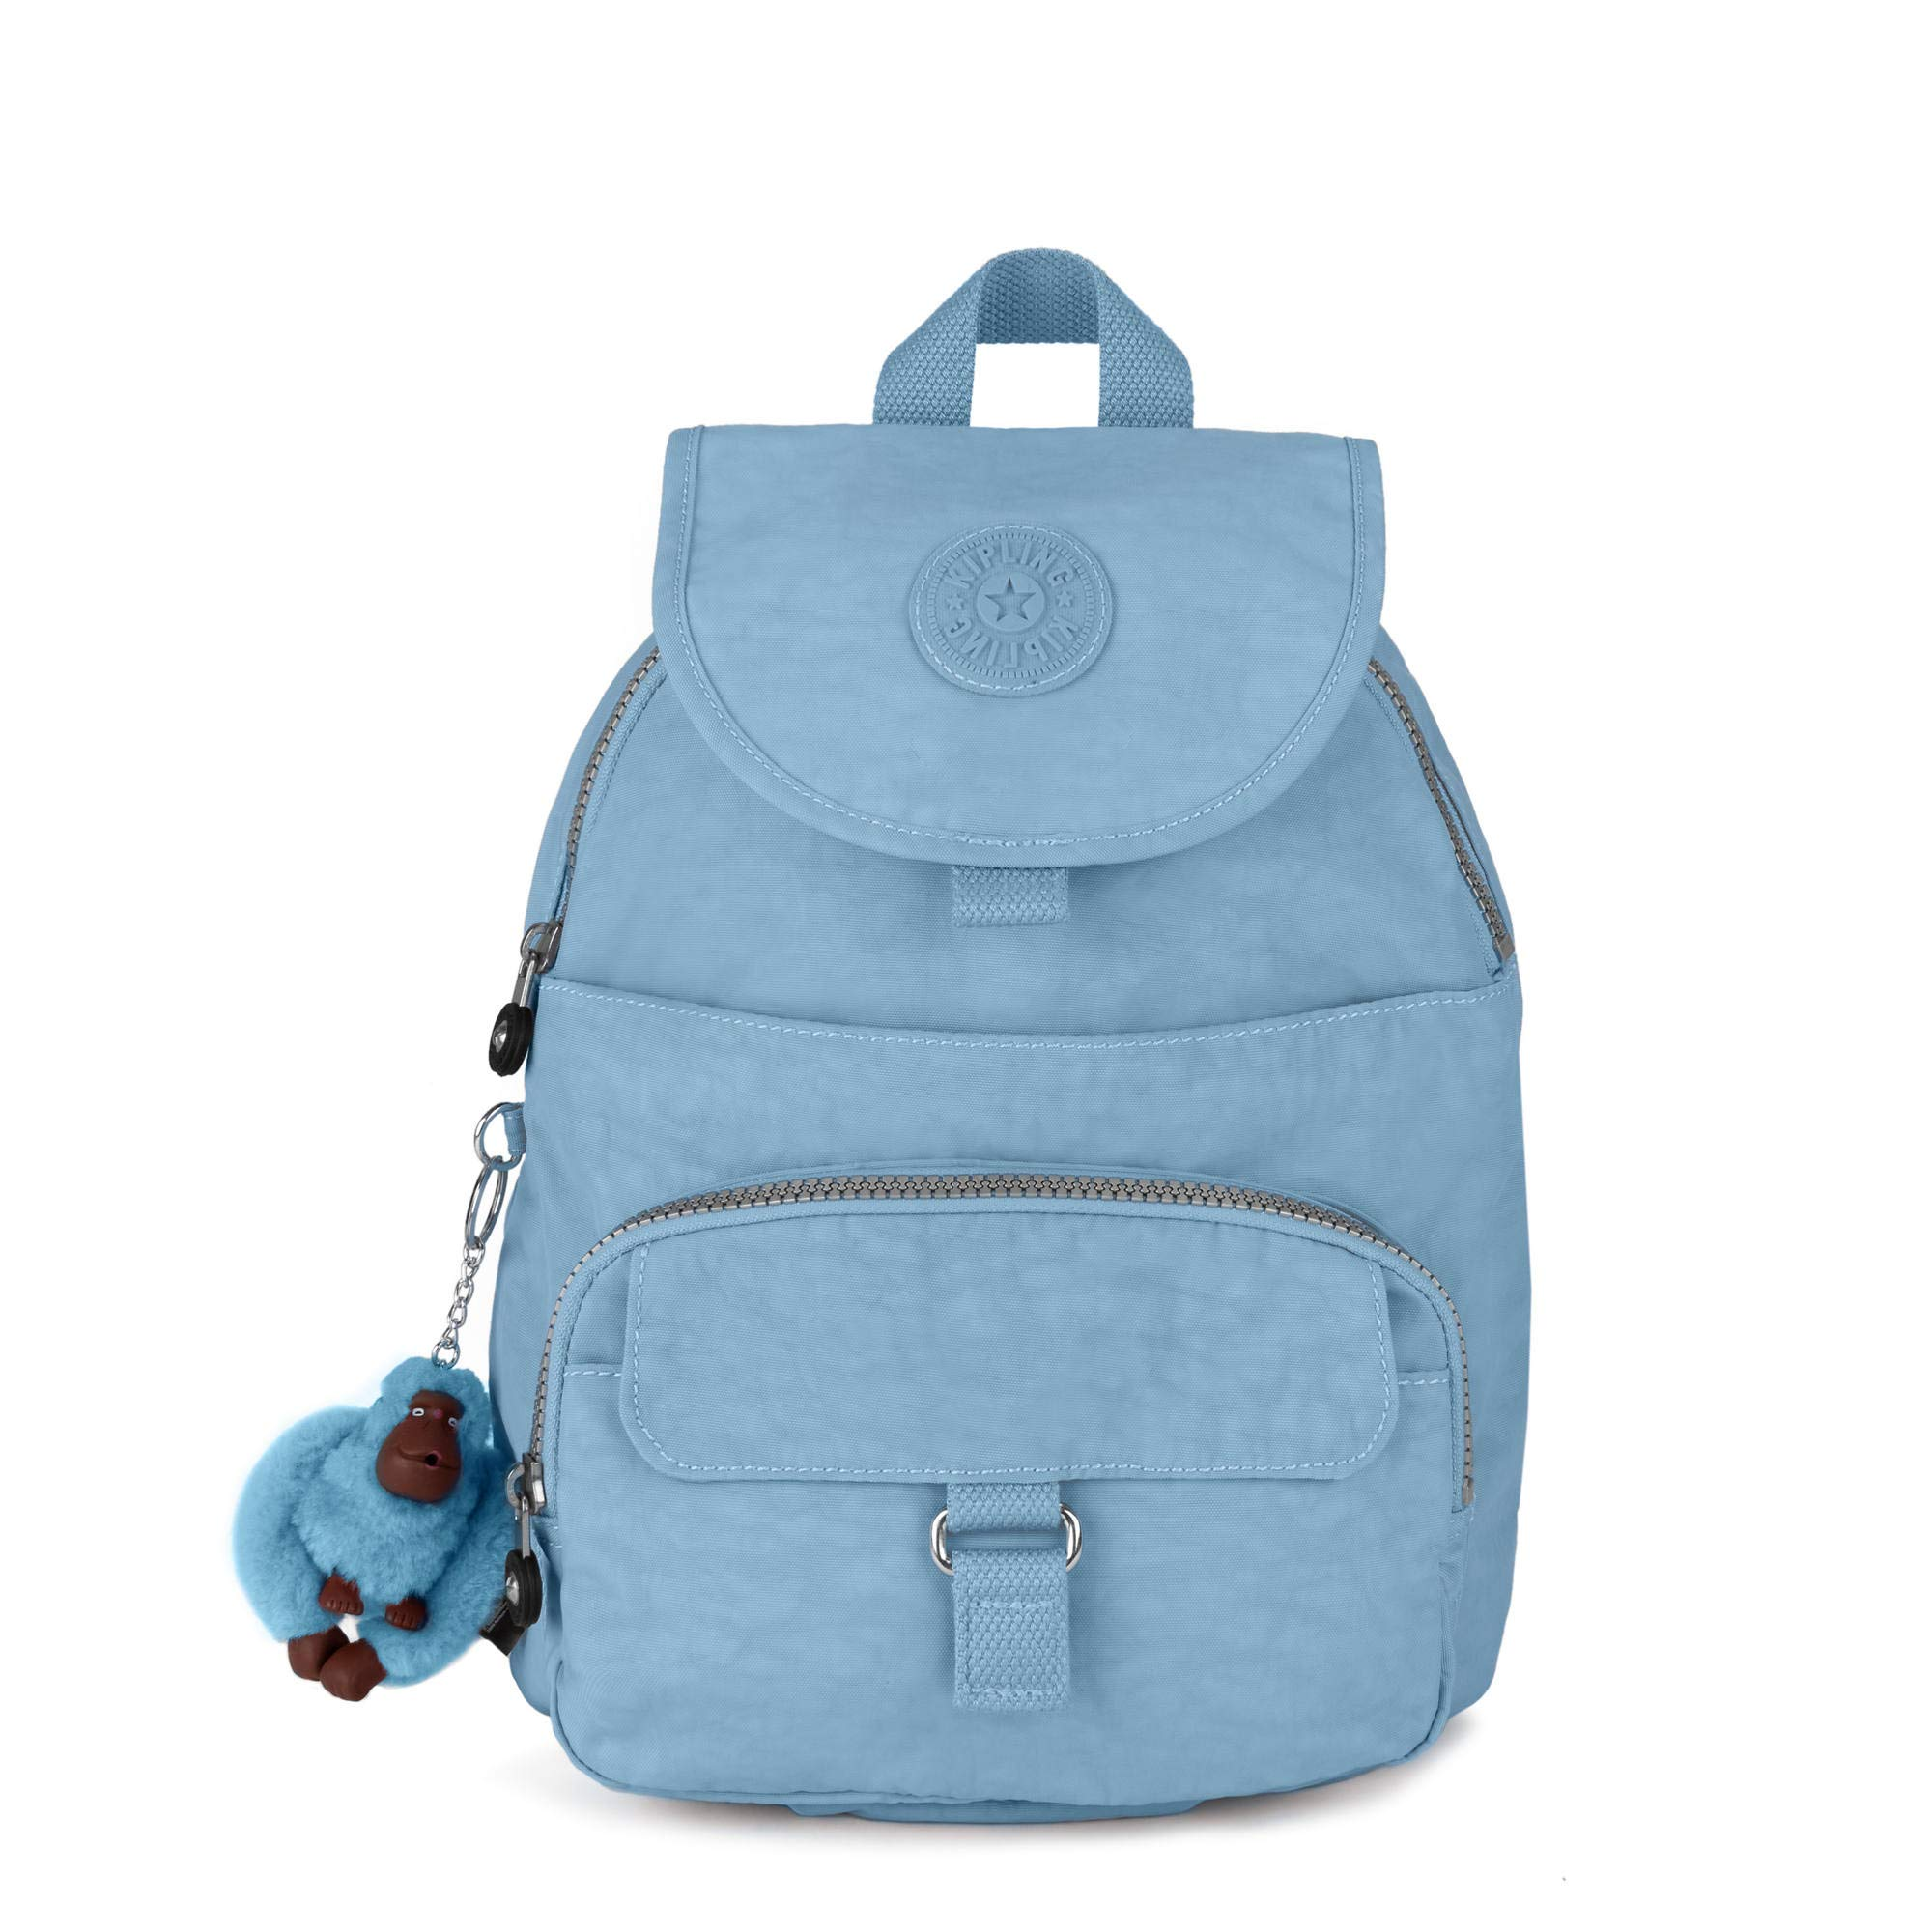 Kipling Queenie Small Backpack One Size Blue Beam